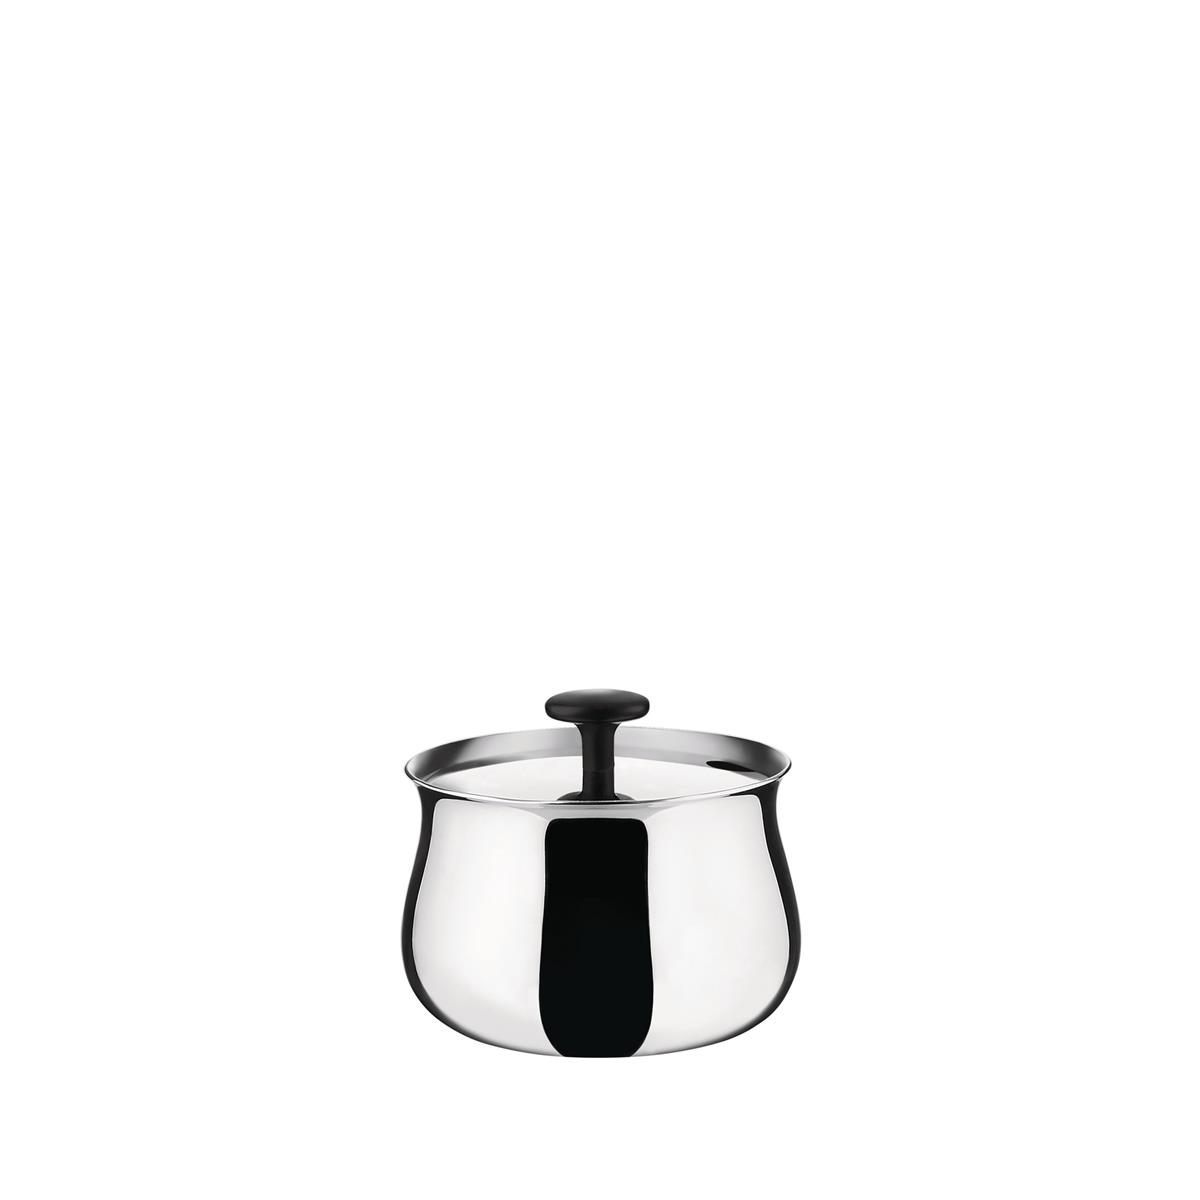 Alessi-Cha Sugar bowl in 18/10 stainless steel mirror polished